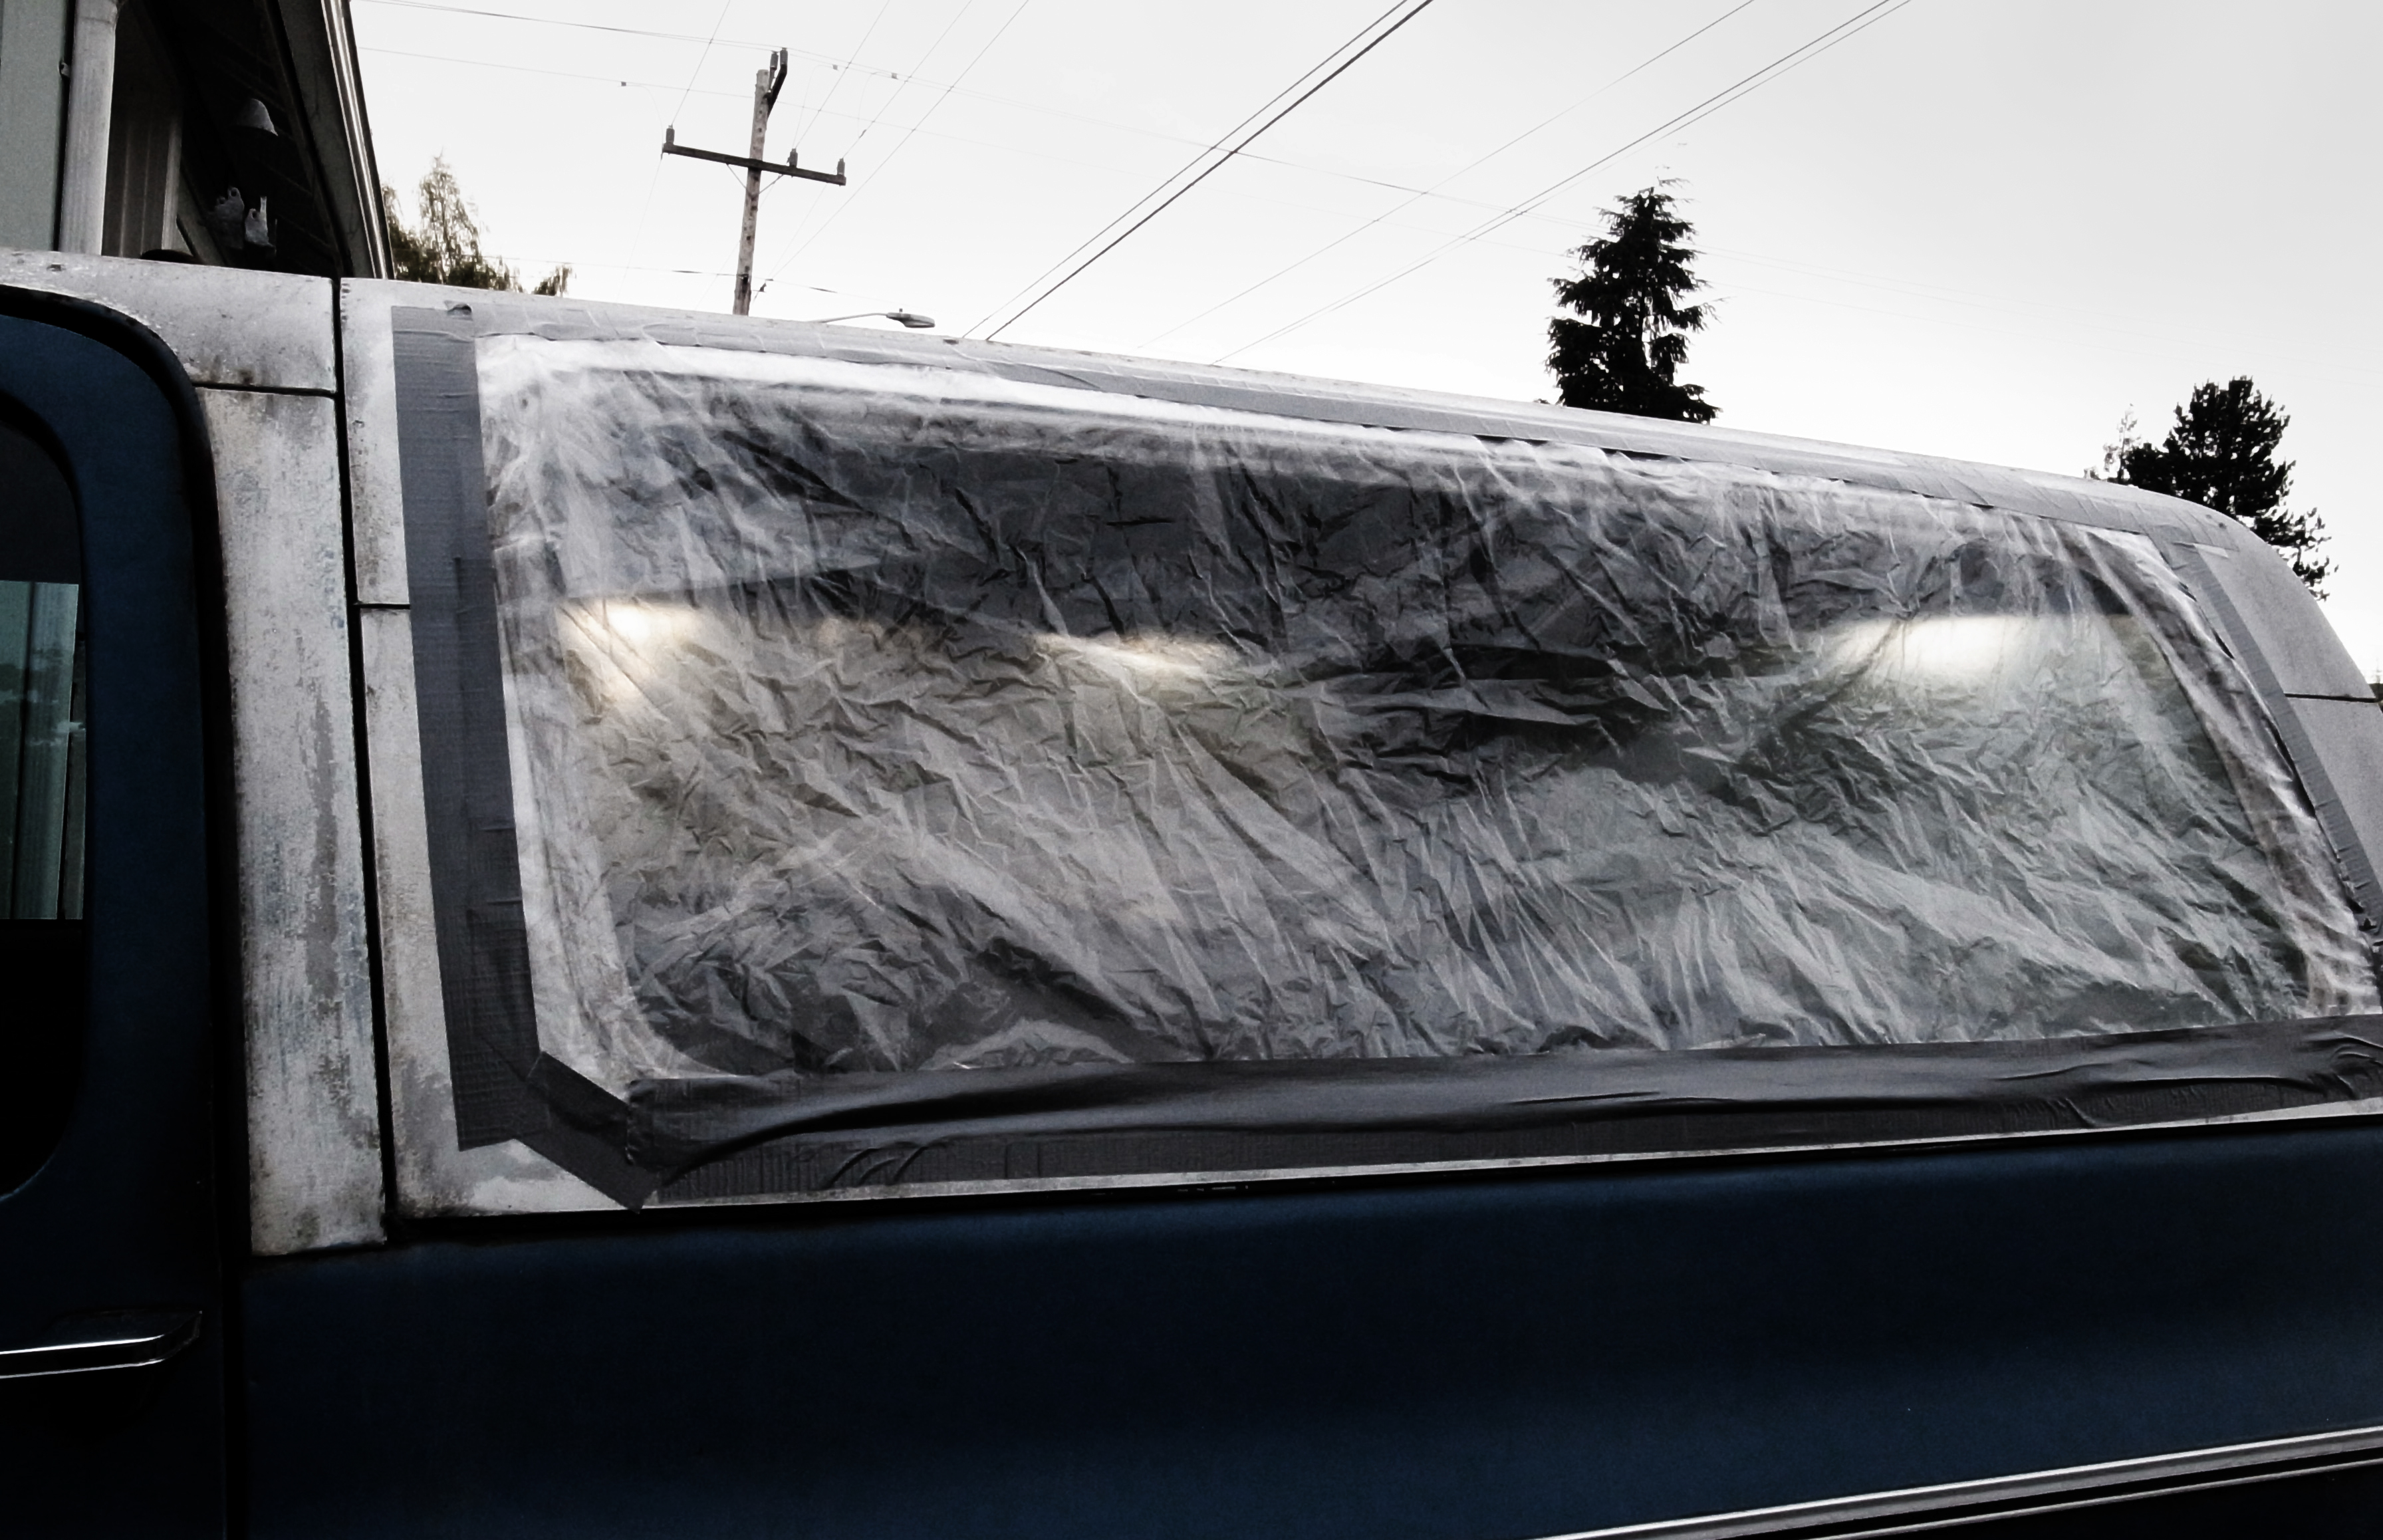 Translucent plastic and duct tape covers the broken window of a pick up truck shell